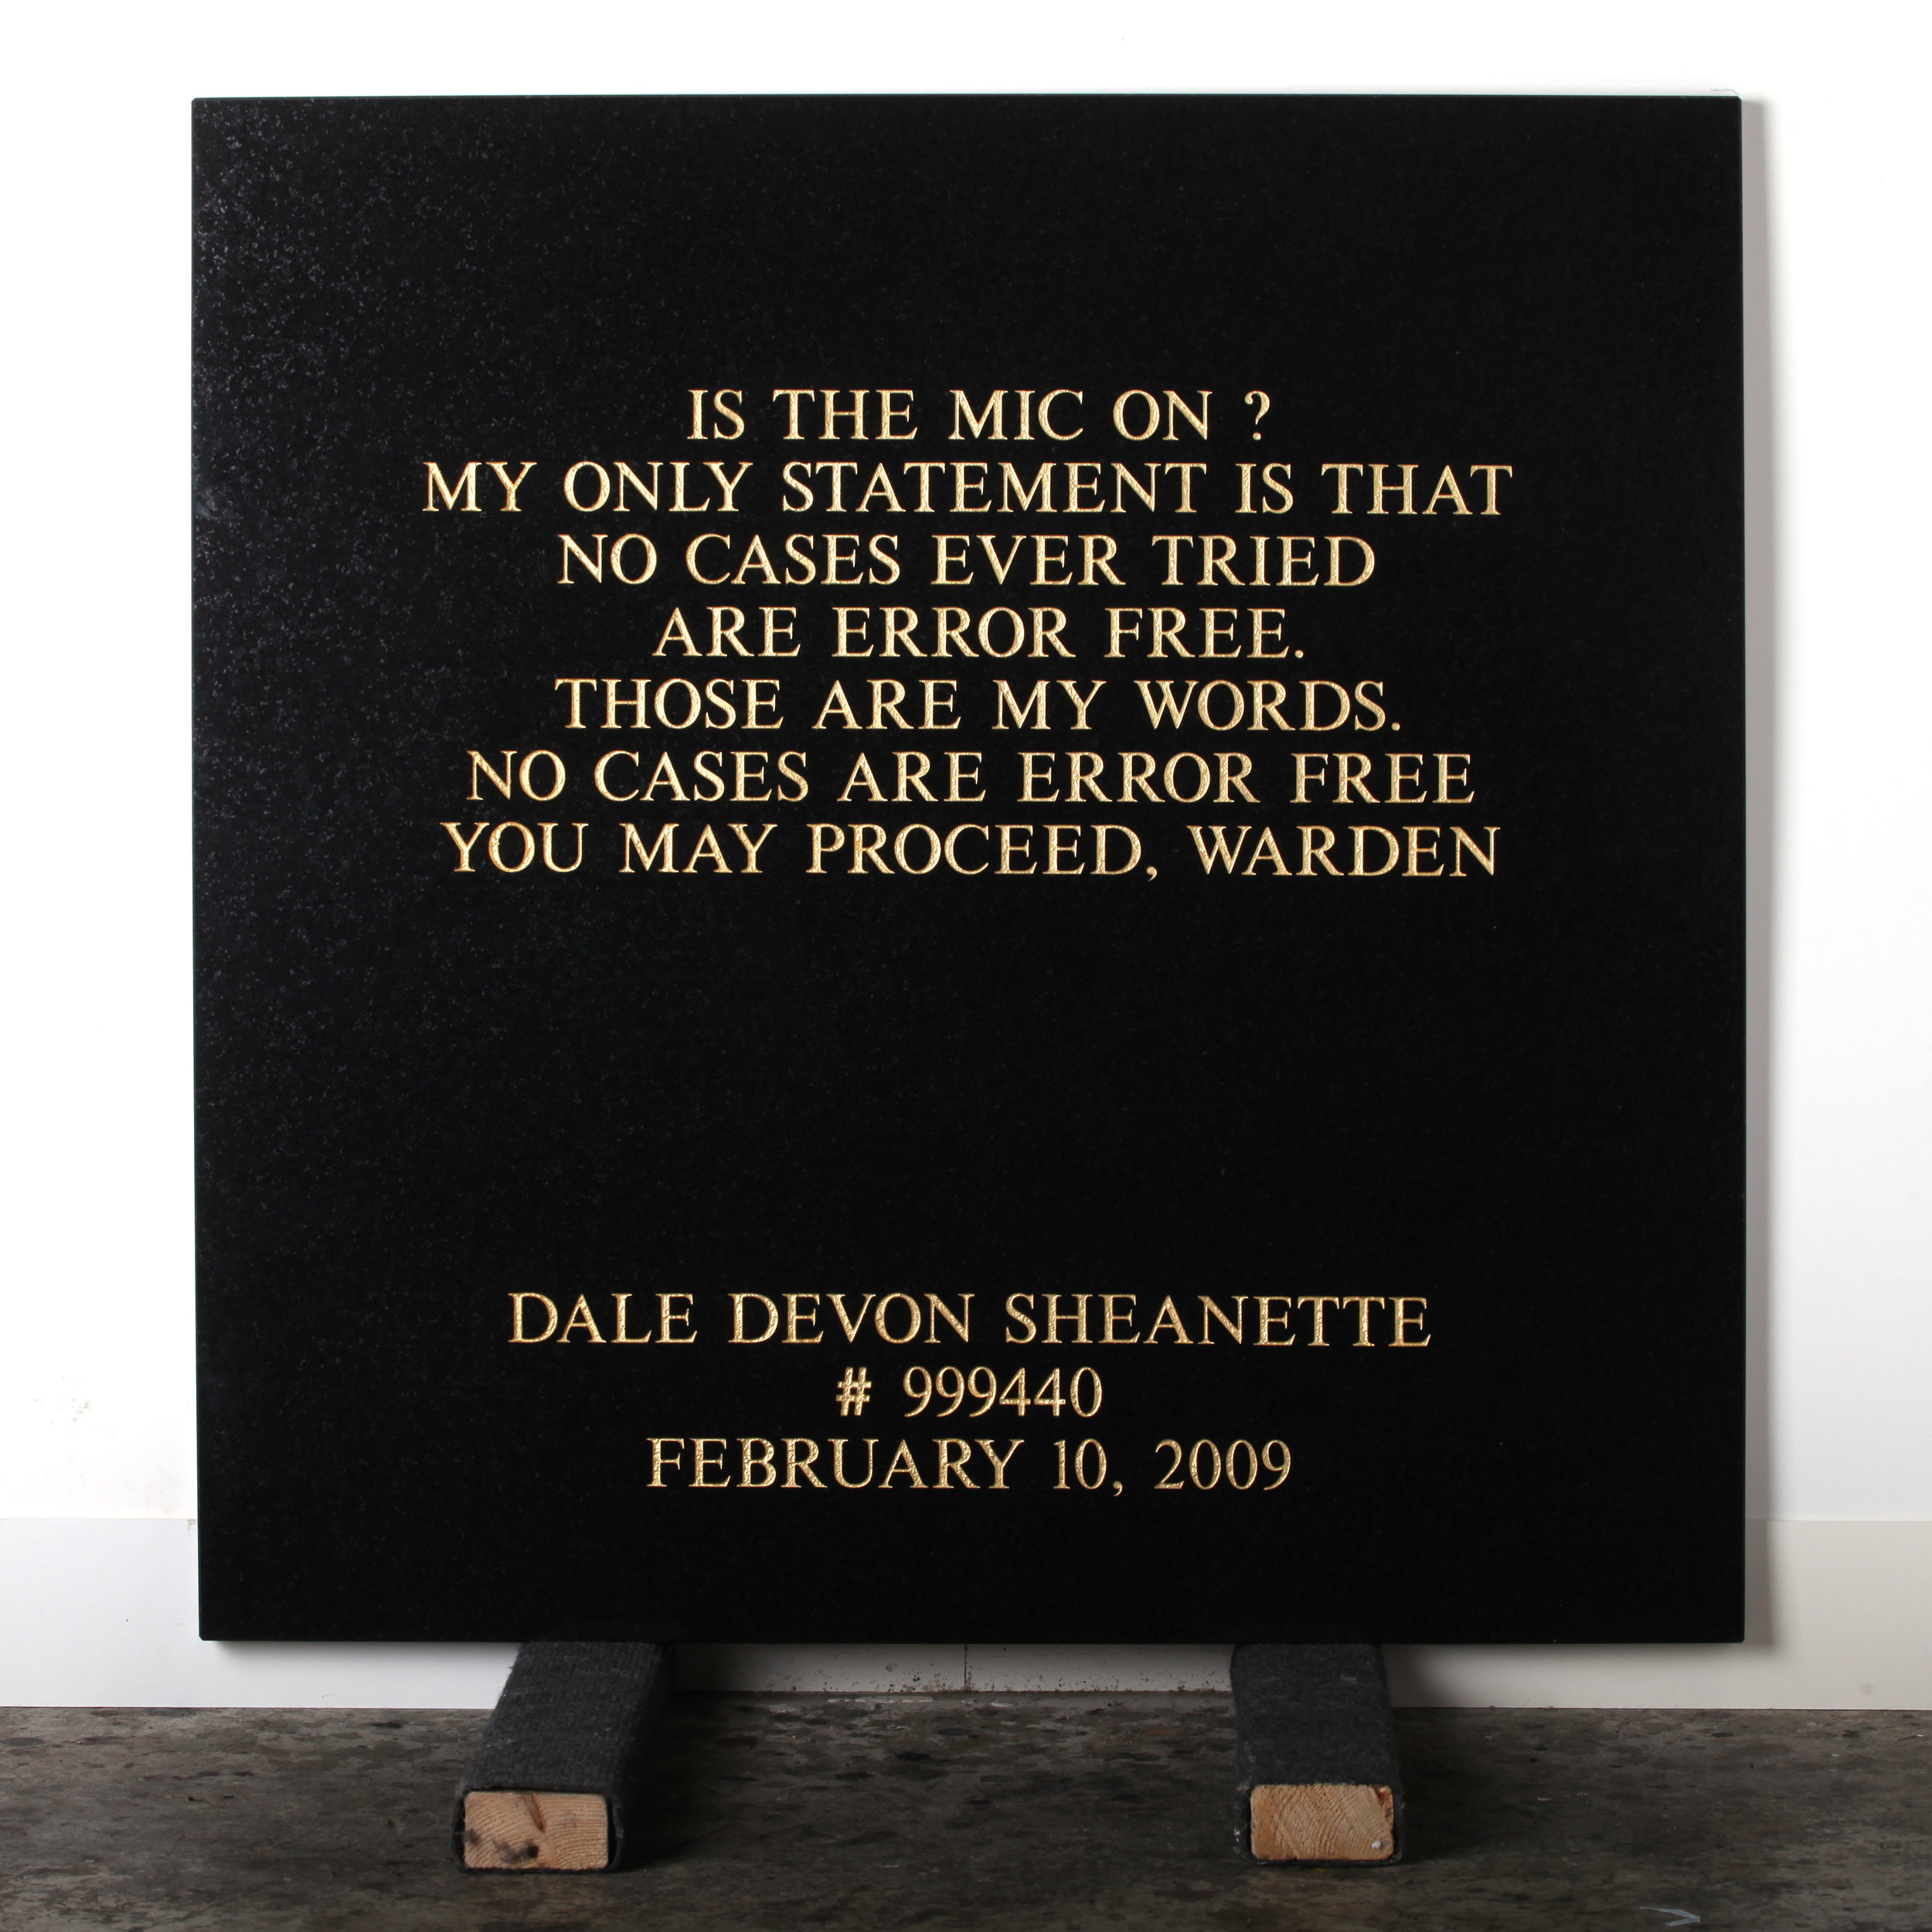 Last Statement /  Plate XII. # 999440 Dale Devon Sheanette  Marble / Sandblasted Letters / 24 Carat Gold Leaf 80 x 80 x 3 cm / 31 x 31 x 1,5 in Collection of Per Fronth